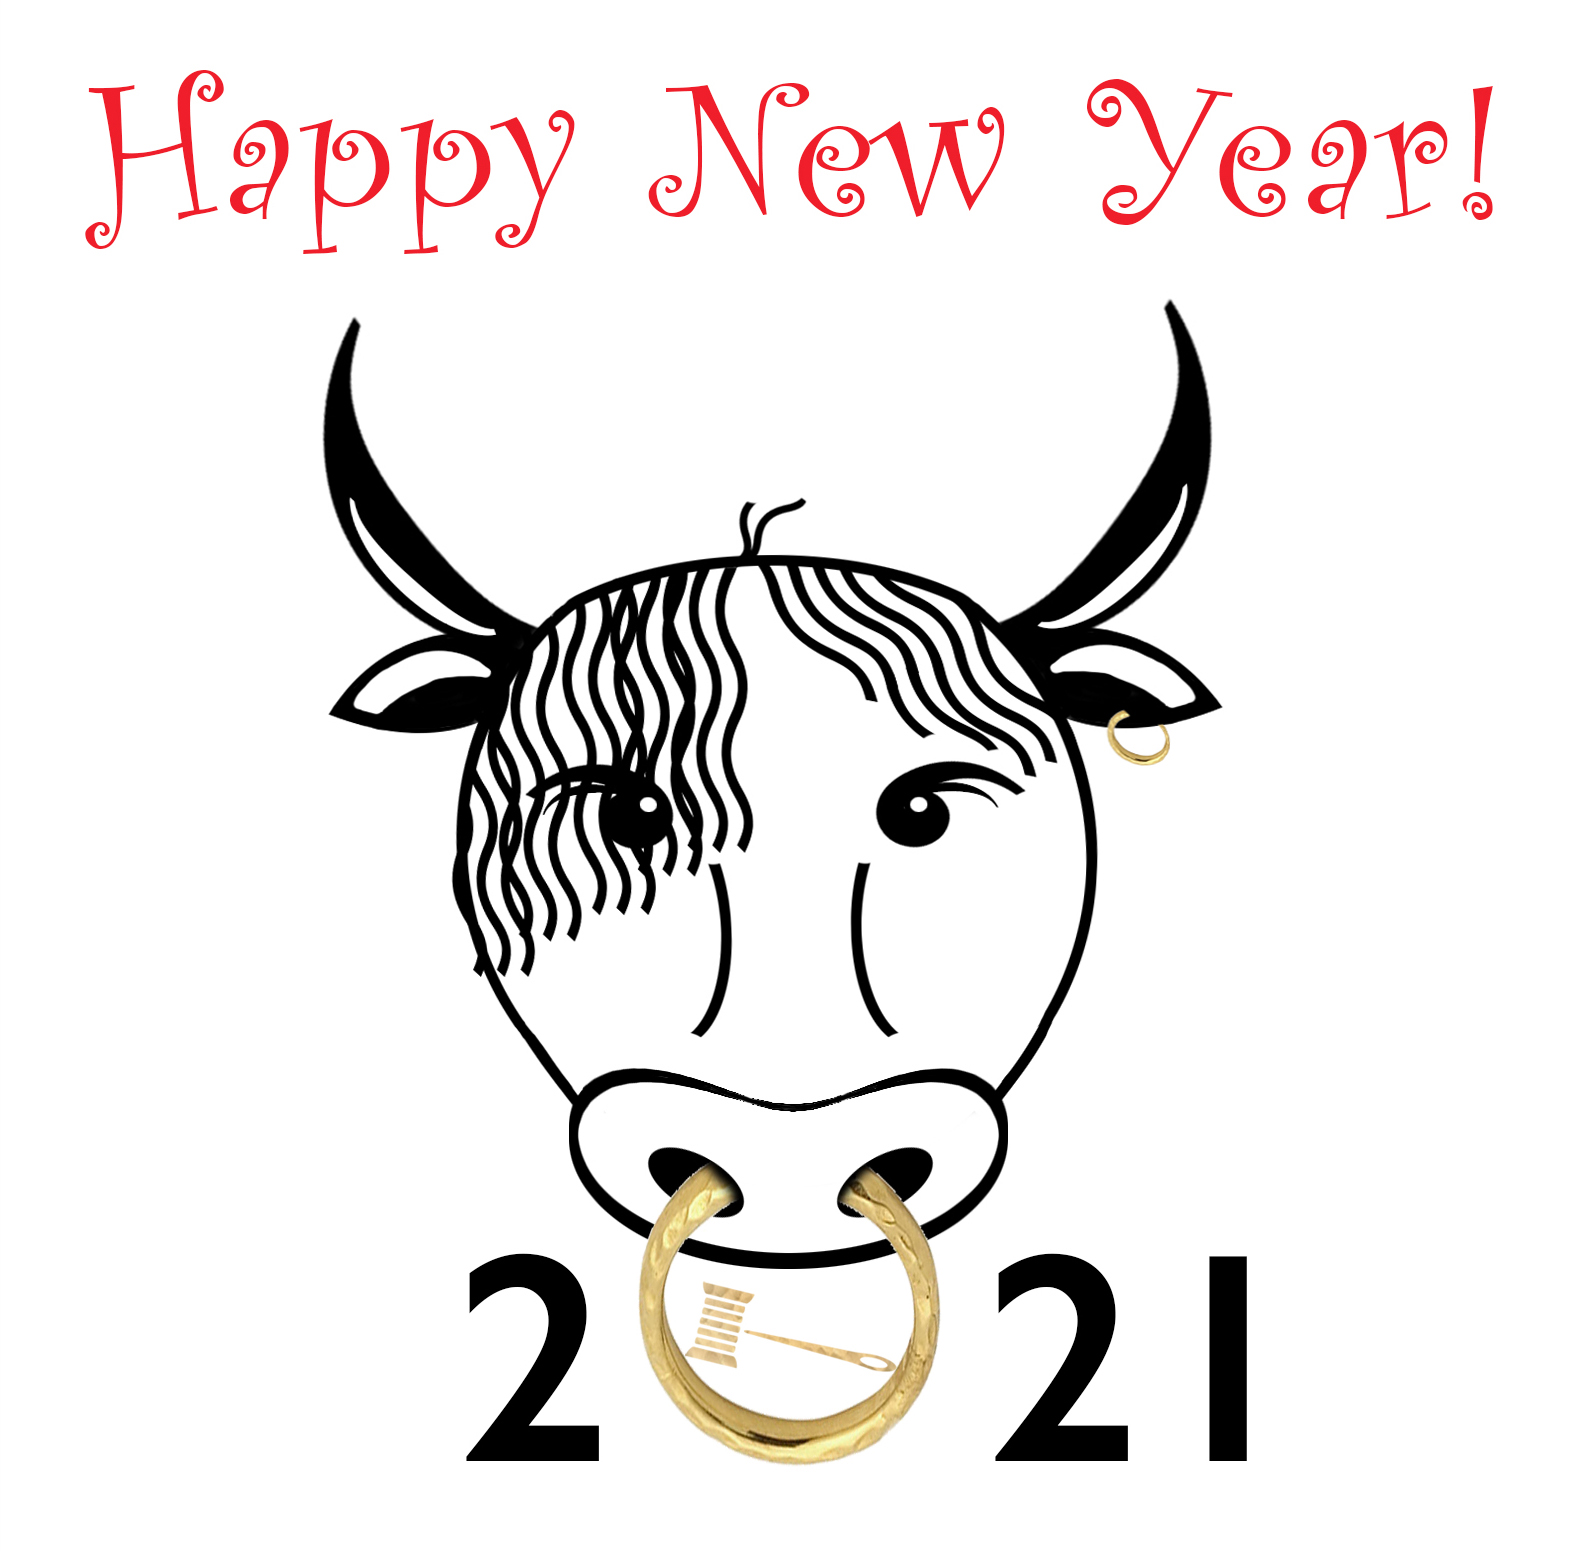 Happy New Year! with line drawing of ox wearing a gold nose ring as the 0 of 2021 with the Fashion Law Institute gavel and spool of thread logo in the center